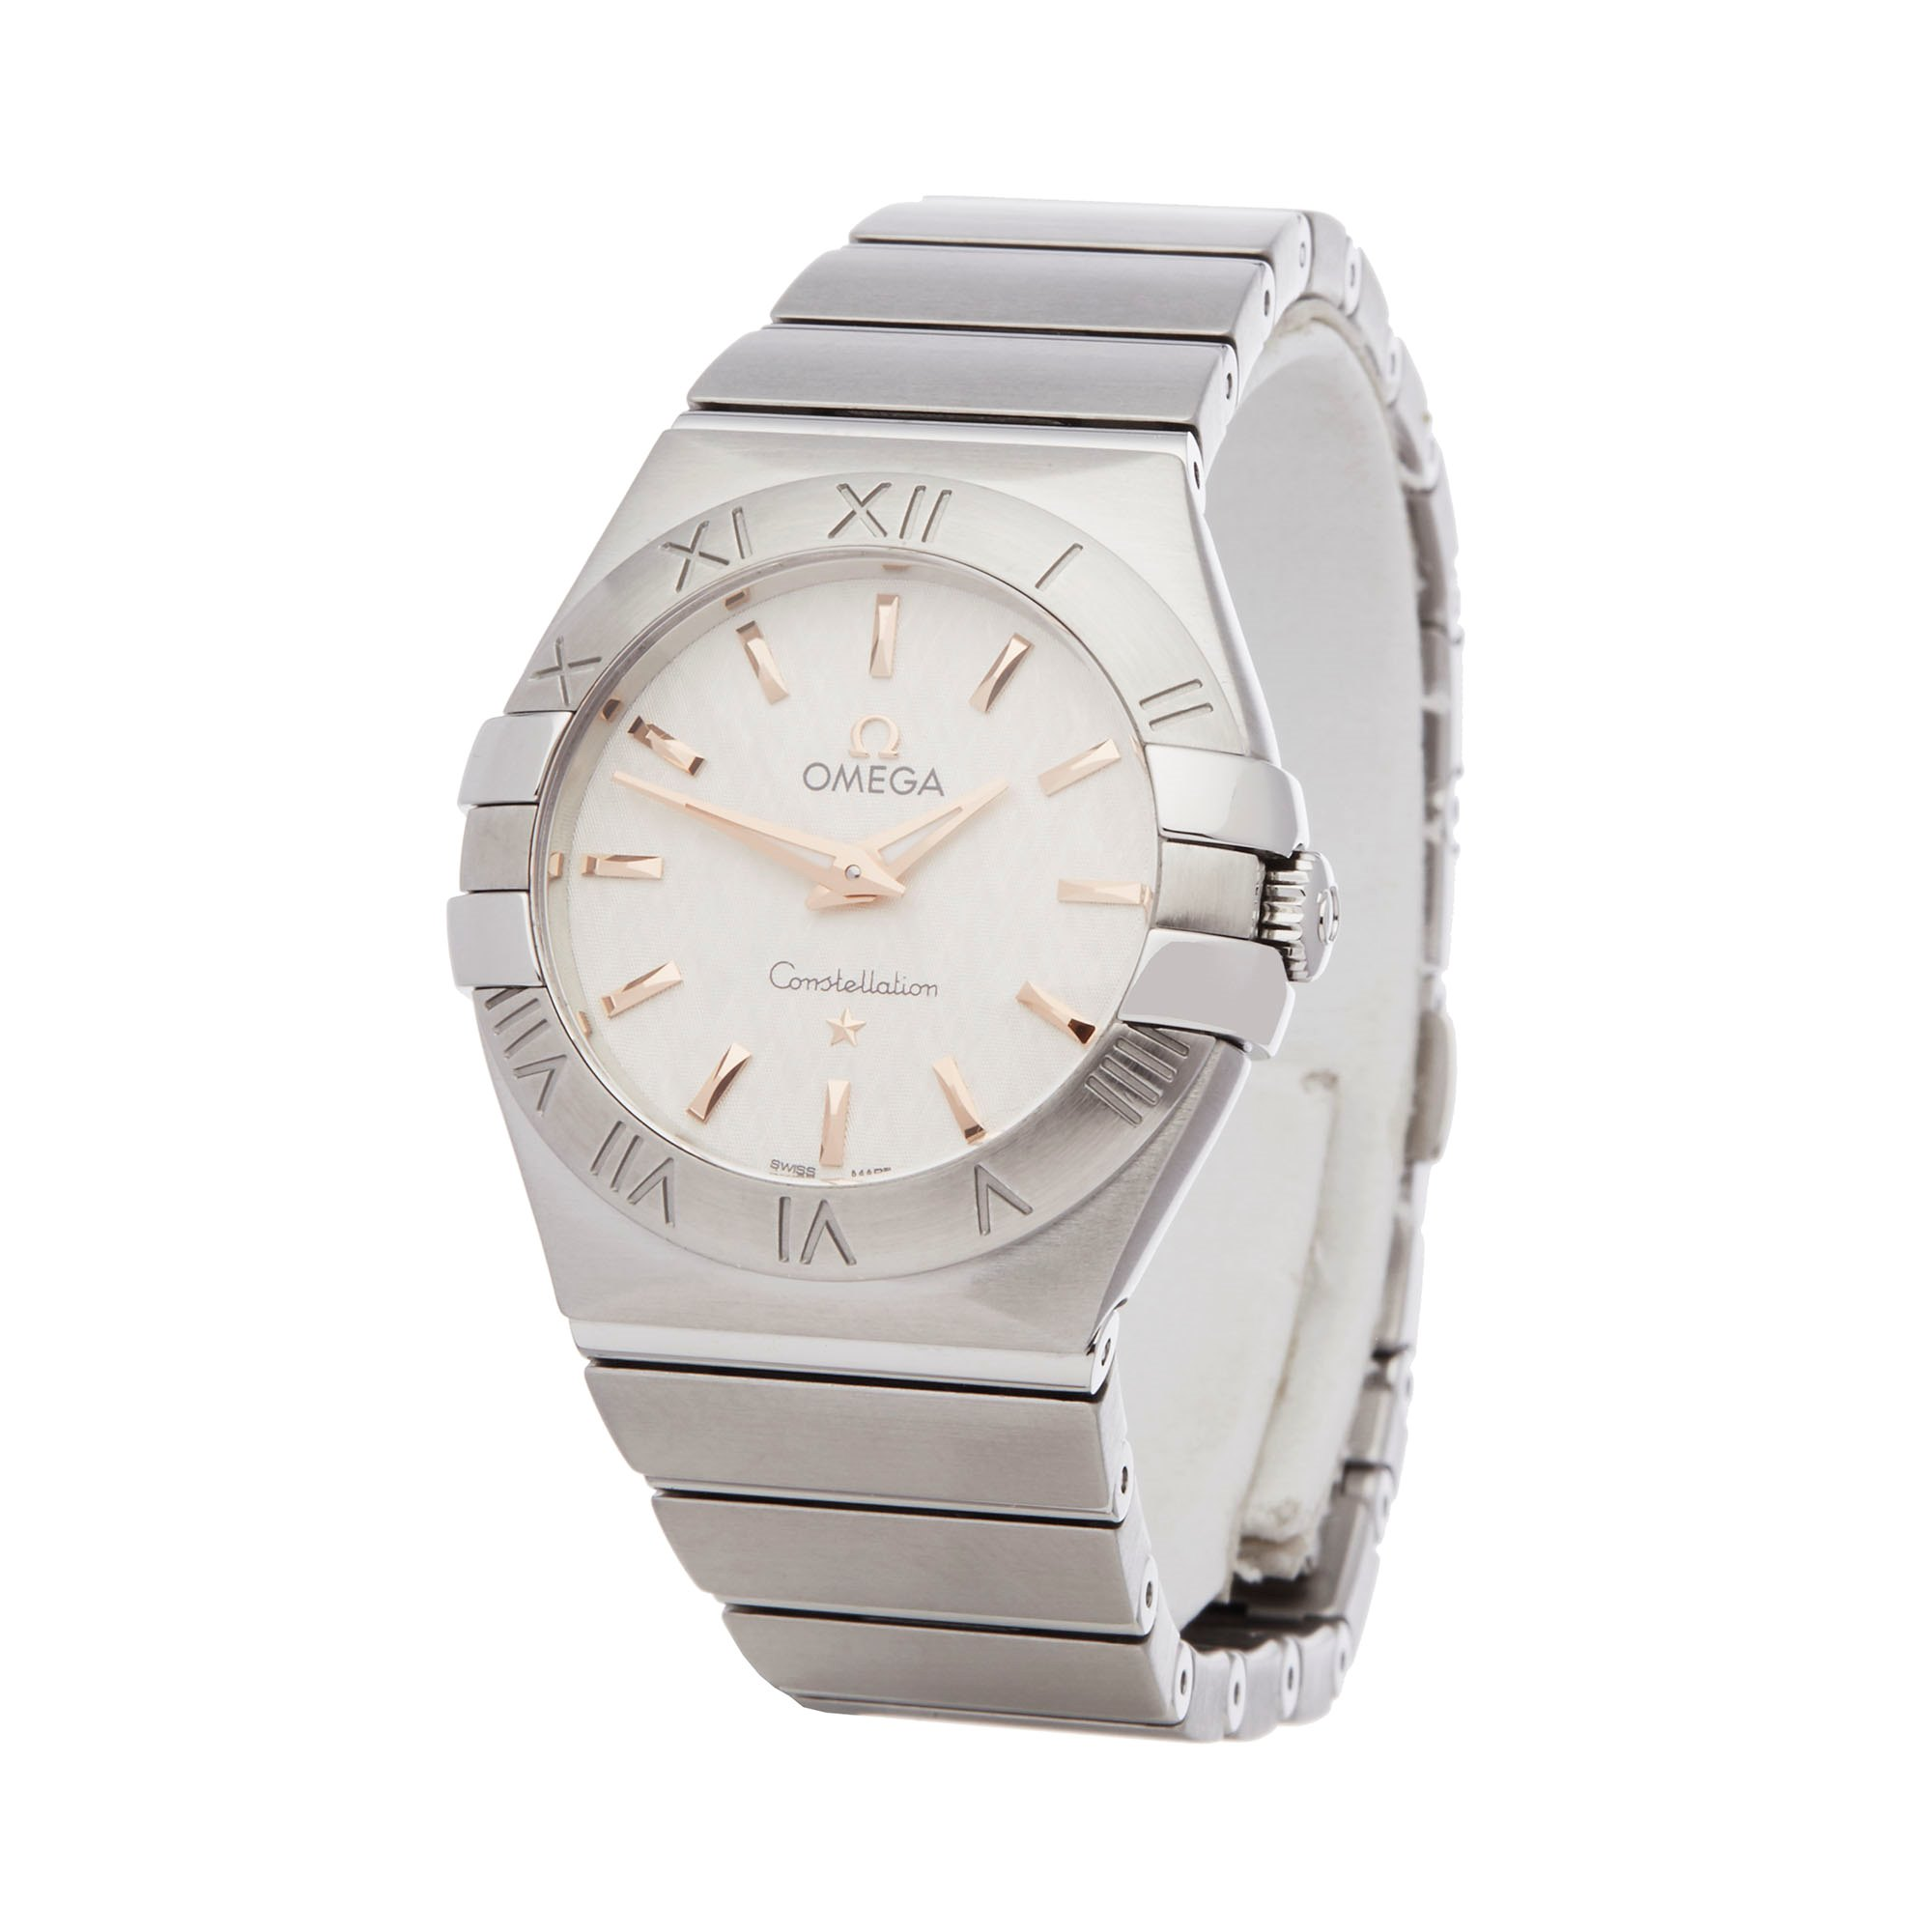 Omega Constellation Stainless Steel 123.10.27.60.02.004